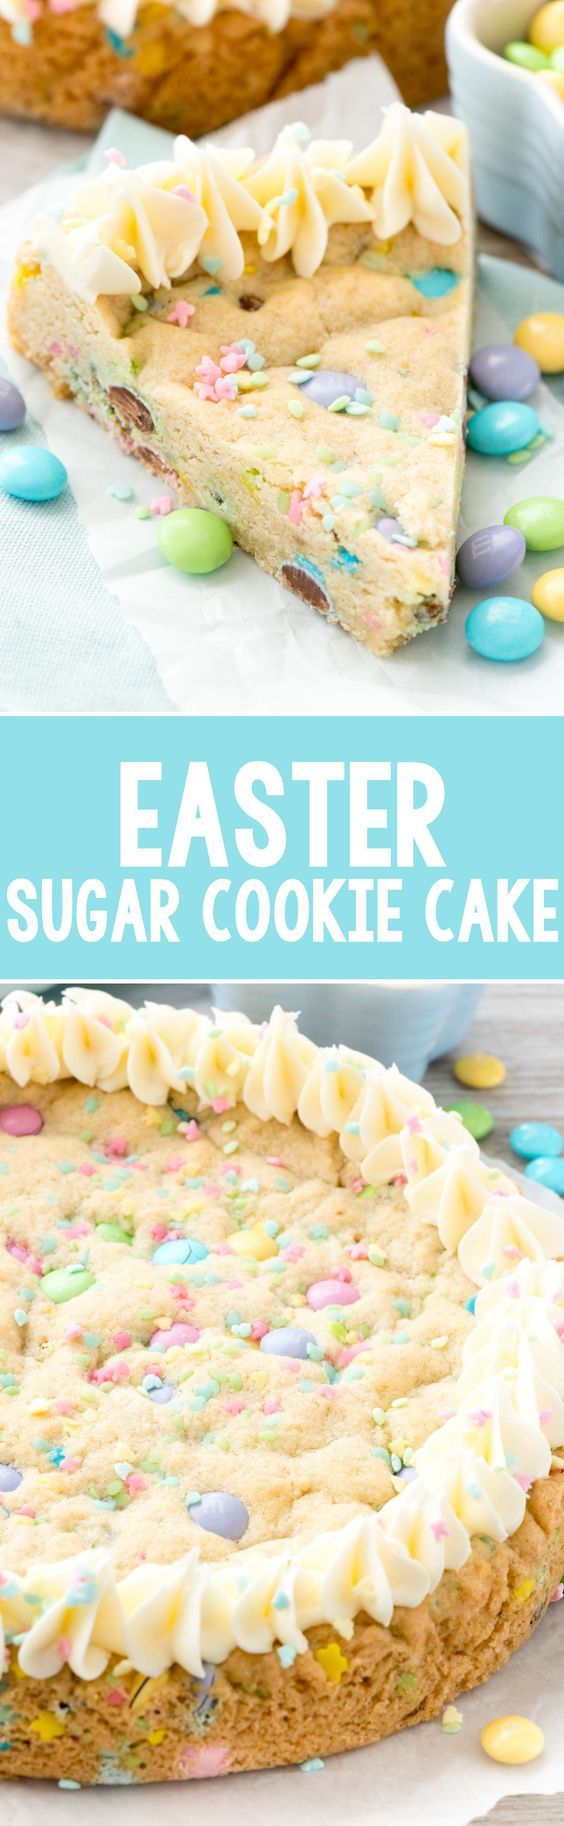 Easter Sugar Cookie Cake - this easy sugar cookie recipe is filled with spring M&Ms and sprinkles and baked in a cake pan. Make an easy frosting and you have the perfect spring cookie cake!